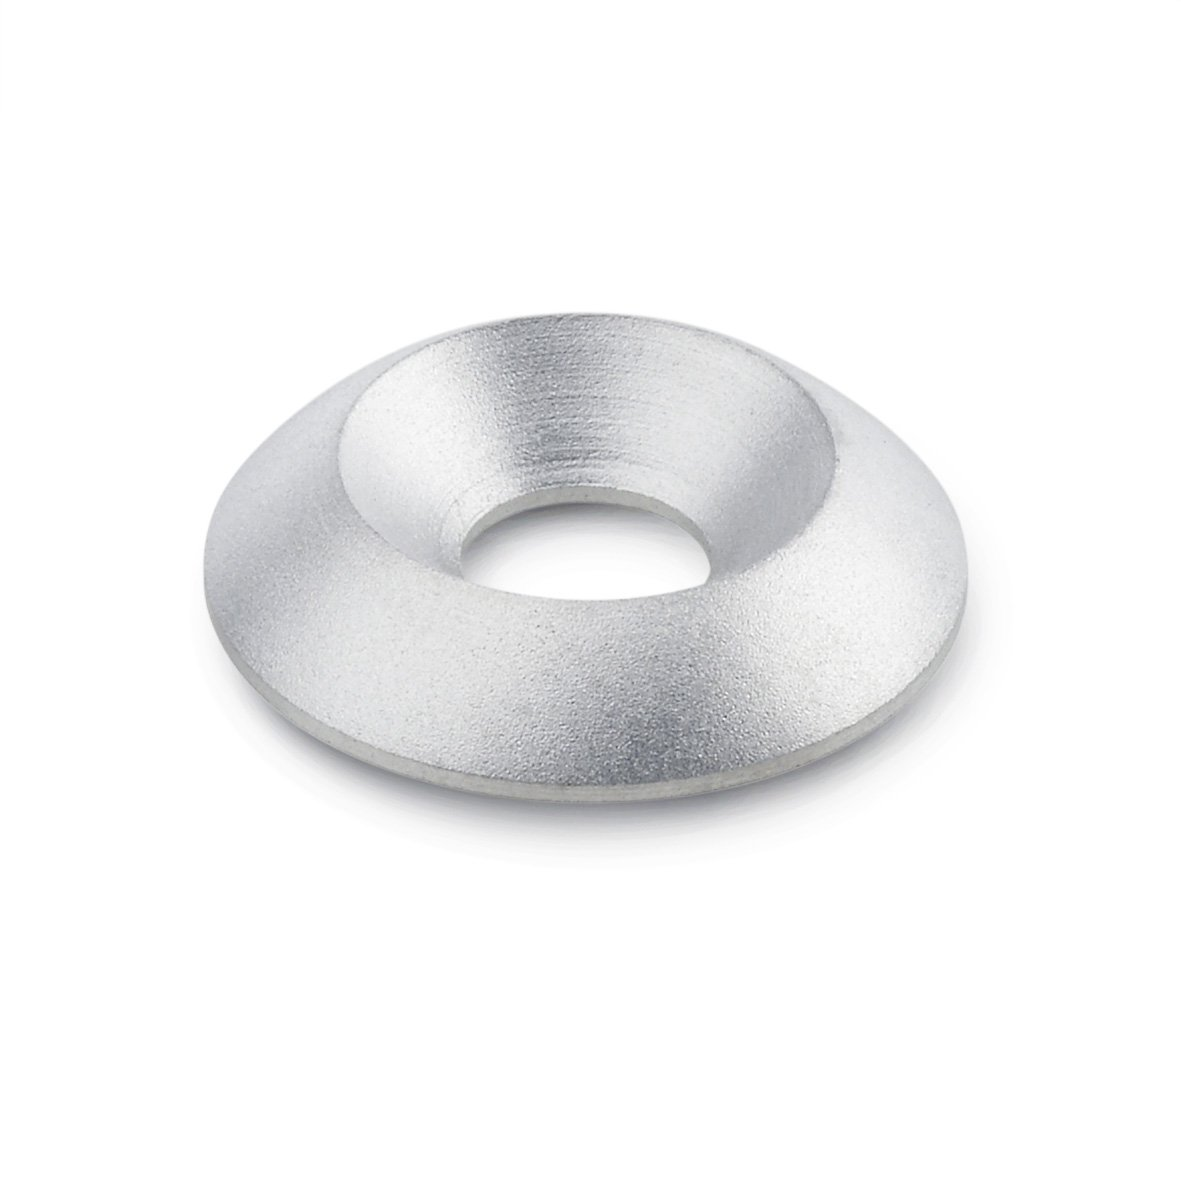 J.W Stainless Steel GN185 Winco 20WBAC Countersunk Washer with Plastic Cover Disk 20 mm OD x 50.3 mm ID